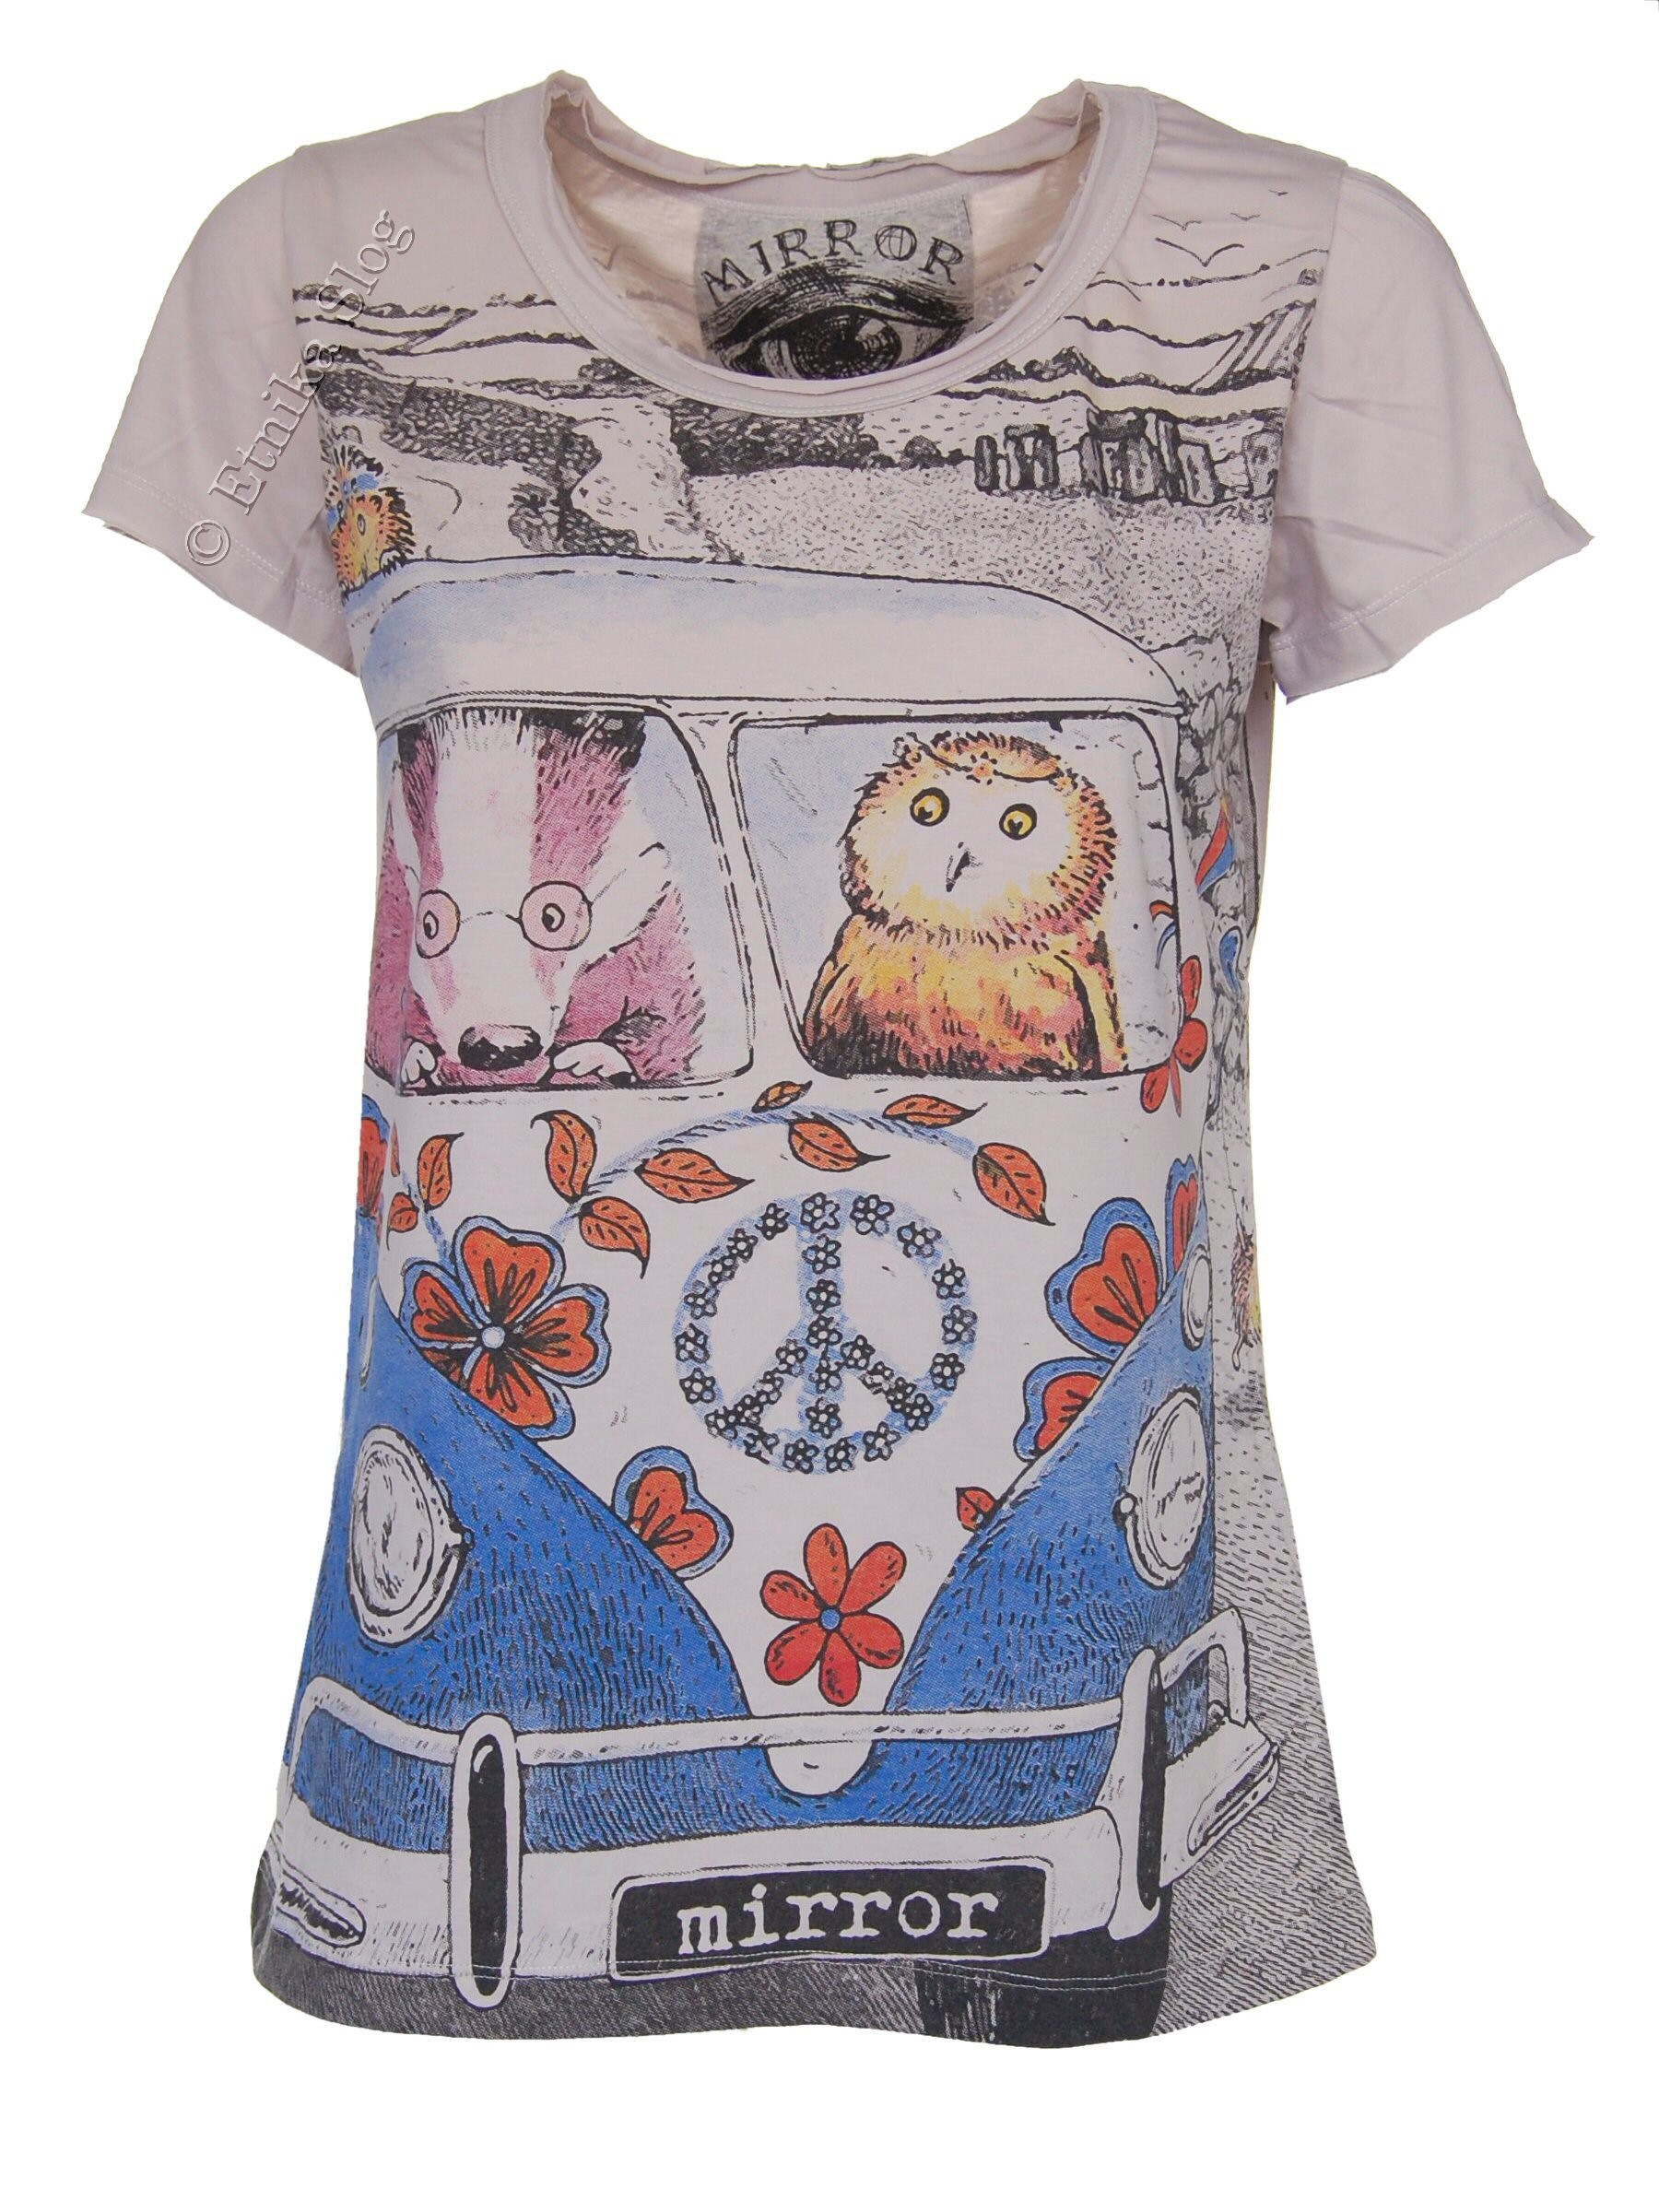 PRINTED T-SHIRTS AB-THM08-28 - Oriente Import S.r.l.